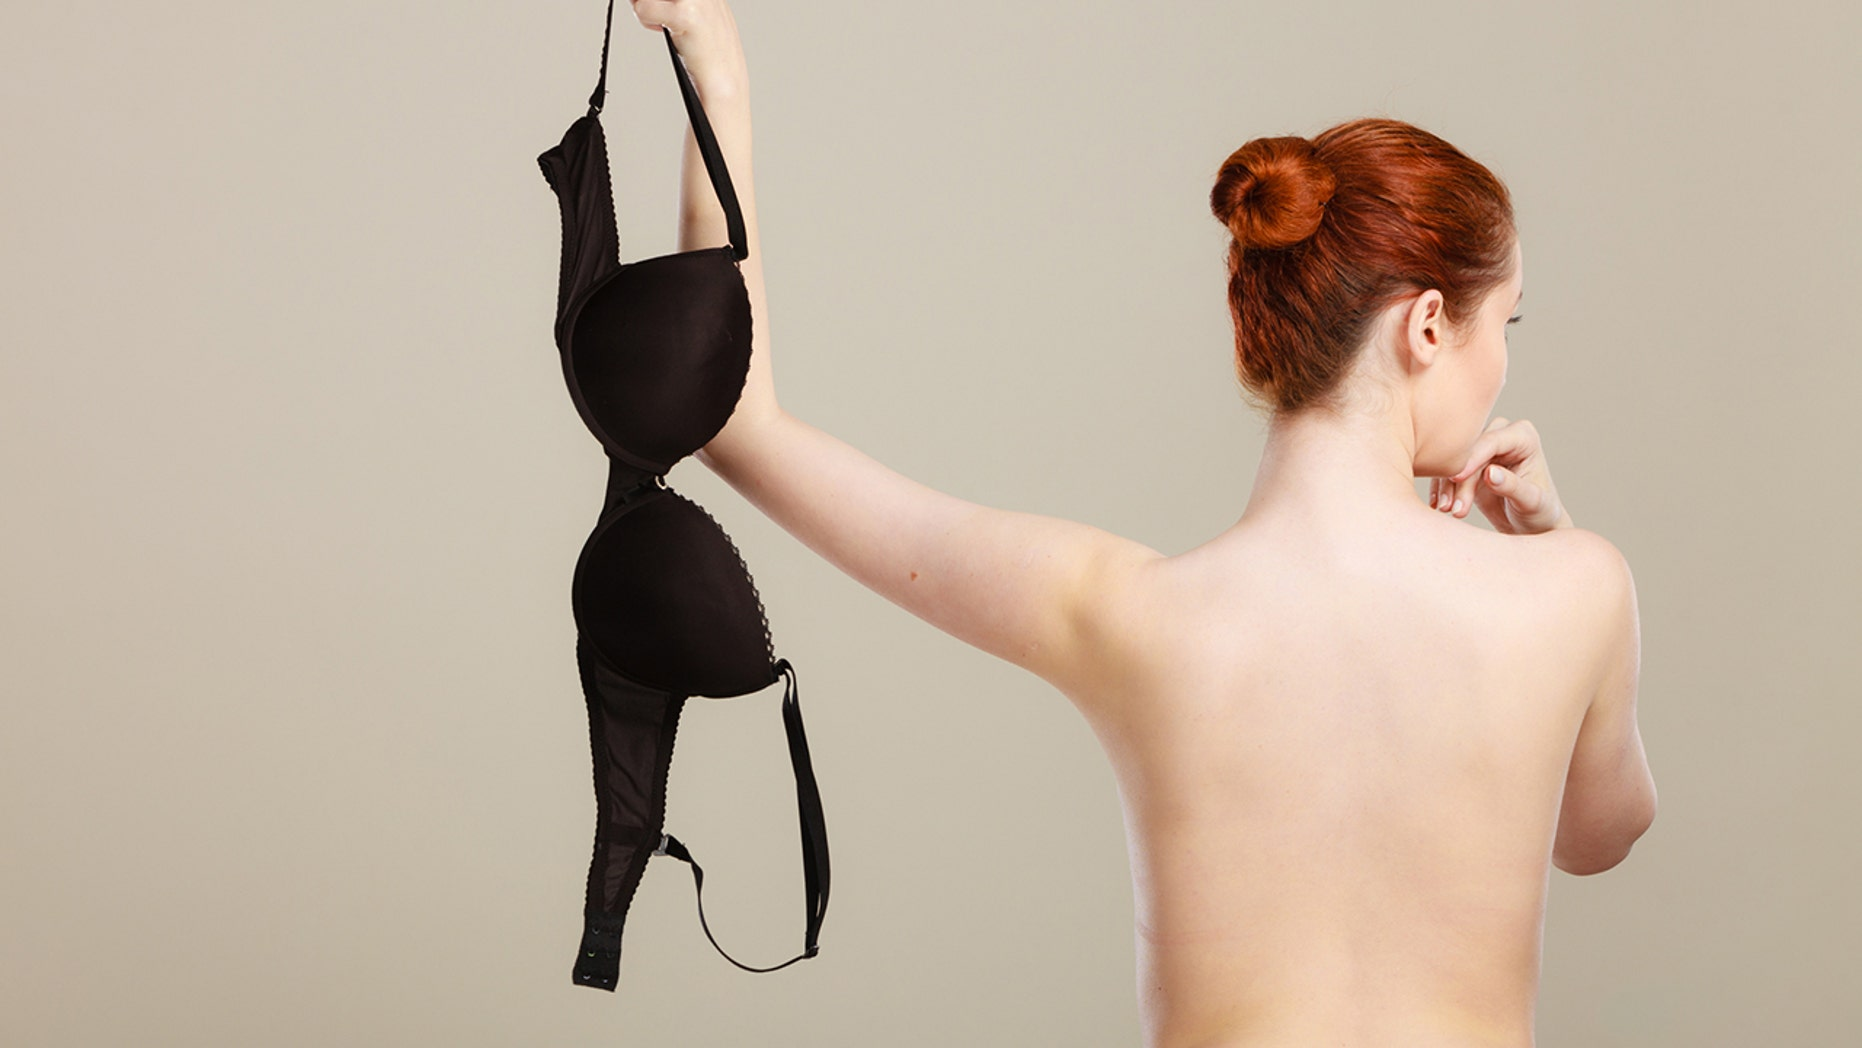 Many woman are frustrated with how Breast Cancer Awareness campaigns sexualize breasts.